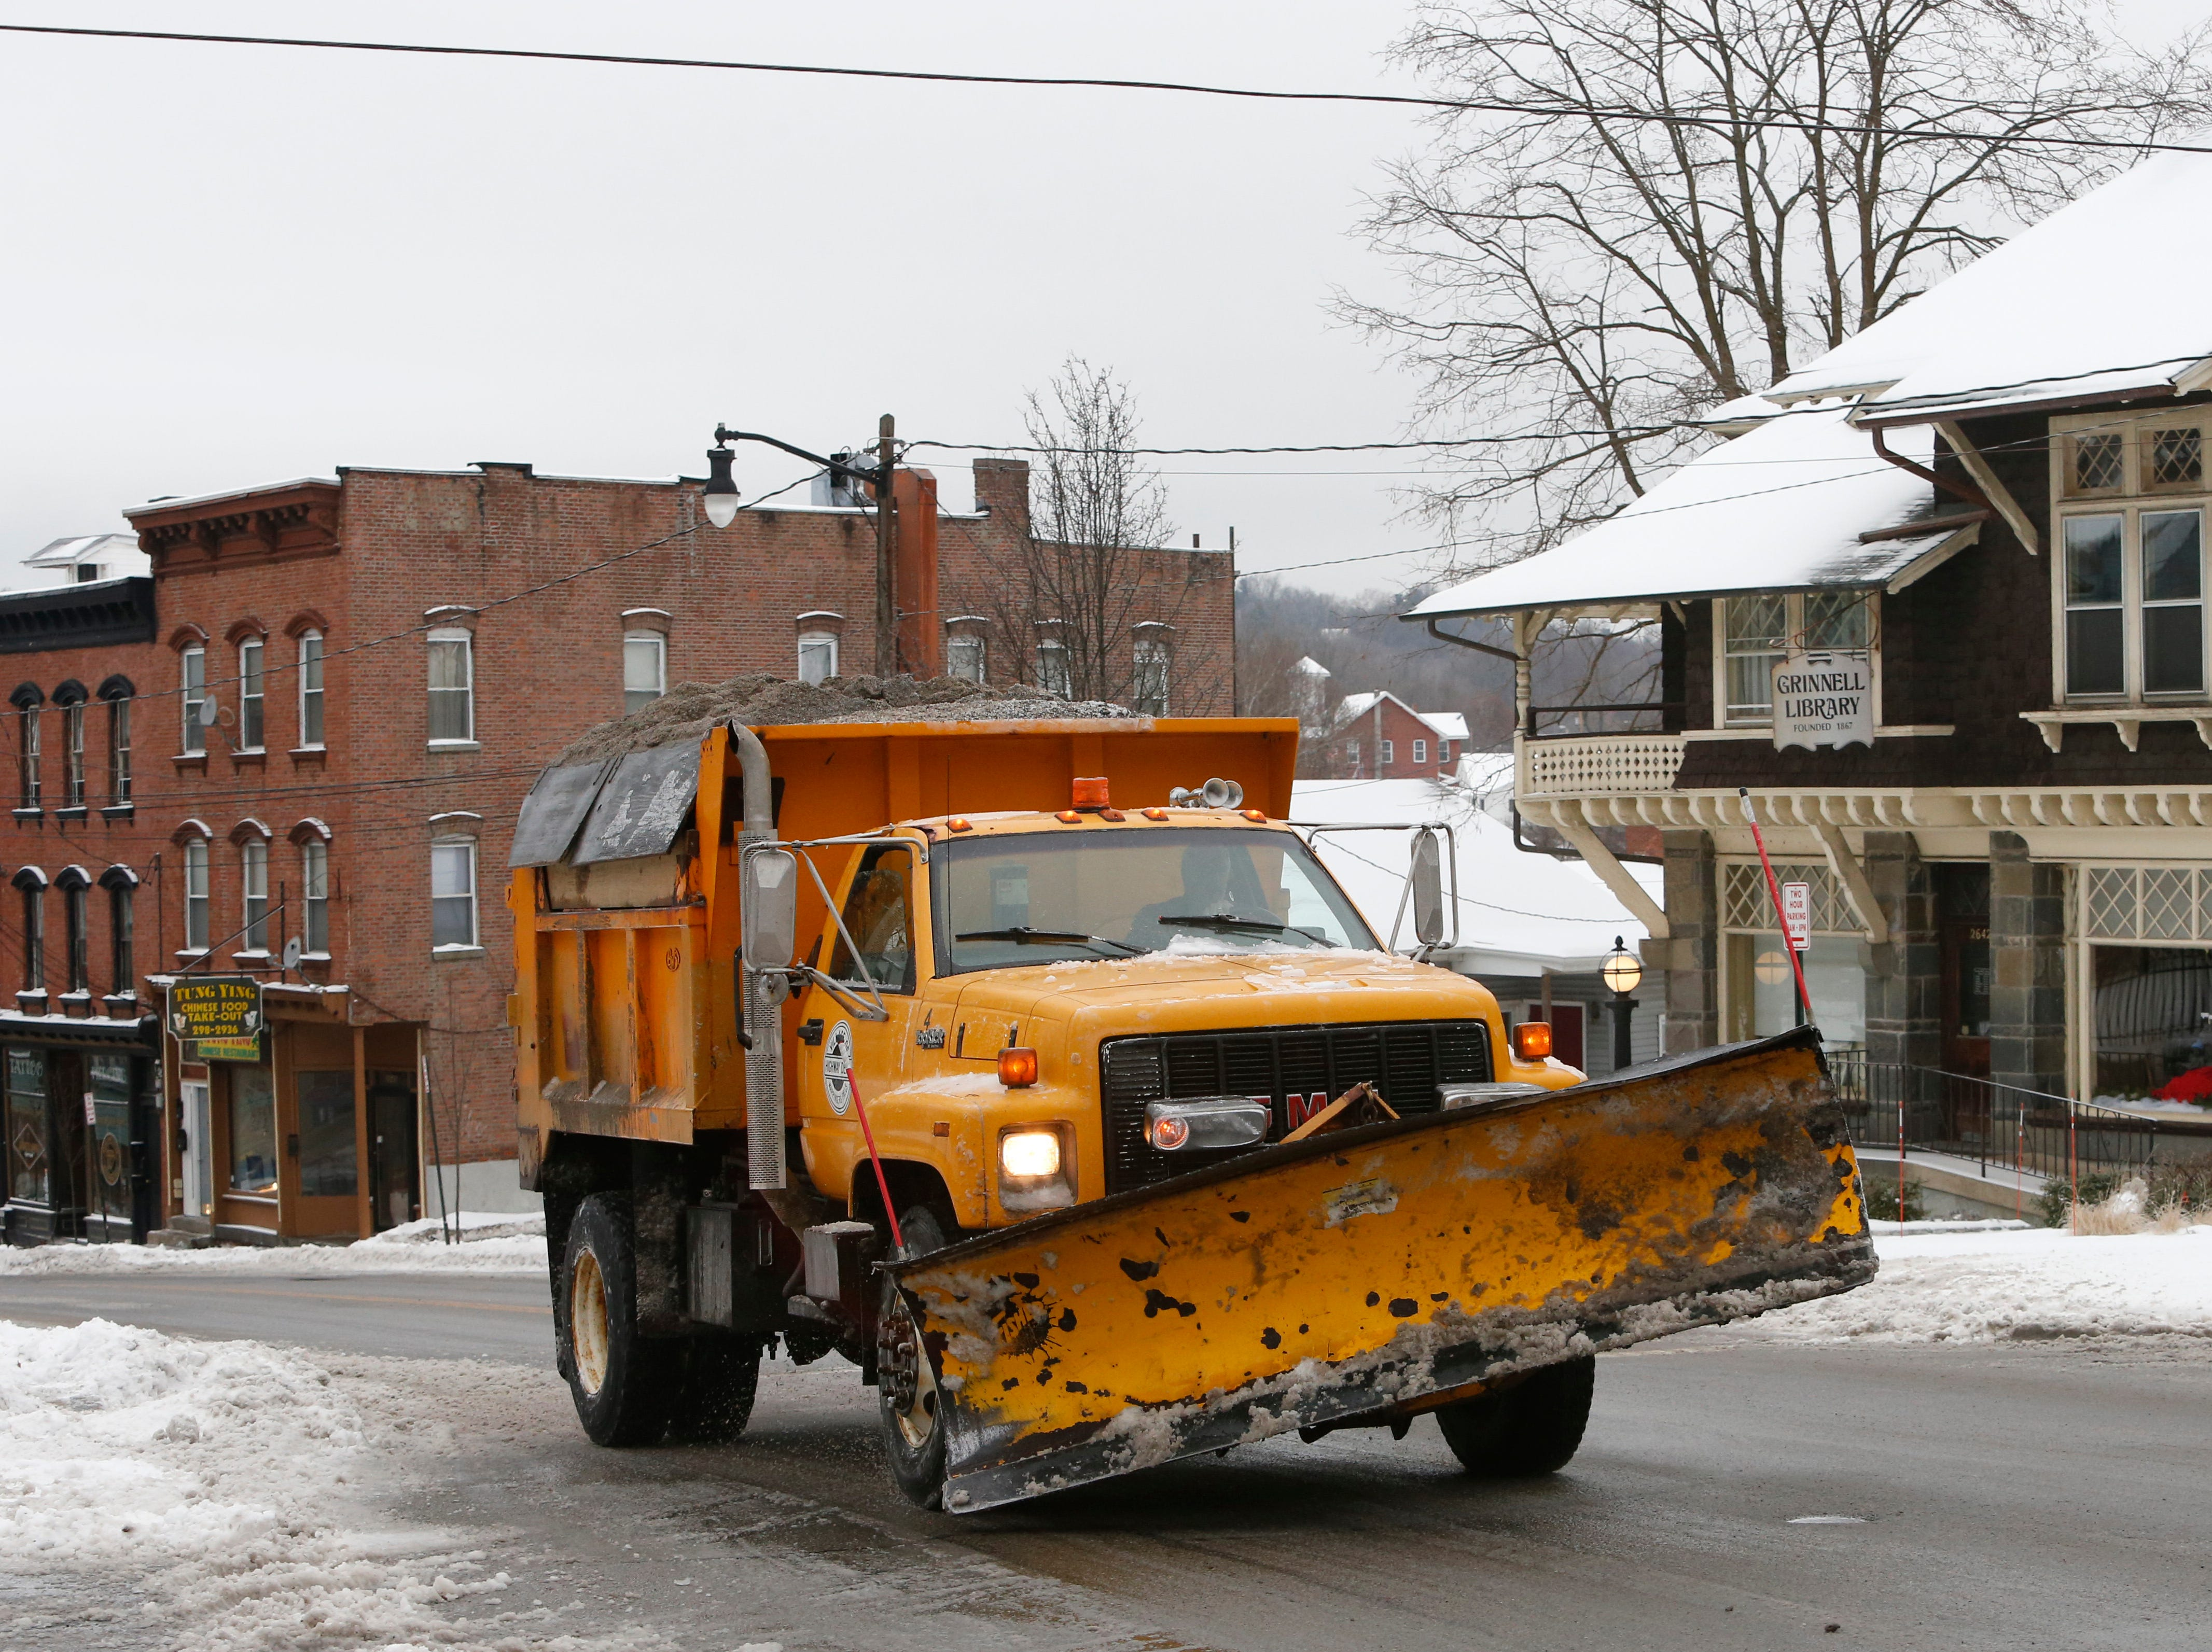 A Village of Wappingers Falls Highway Department plow clears snow along East Main Street on January 20, 2019.